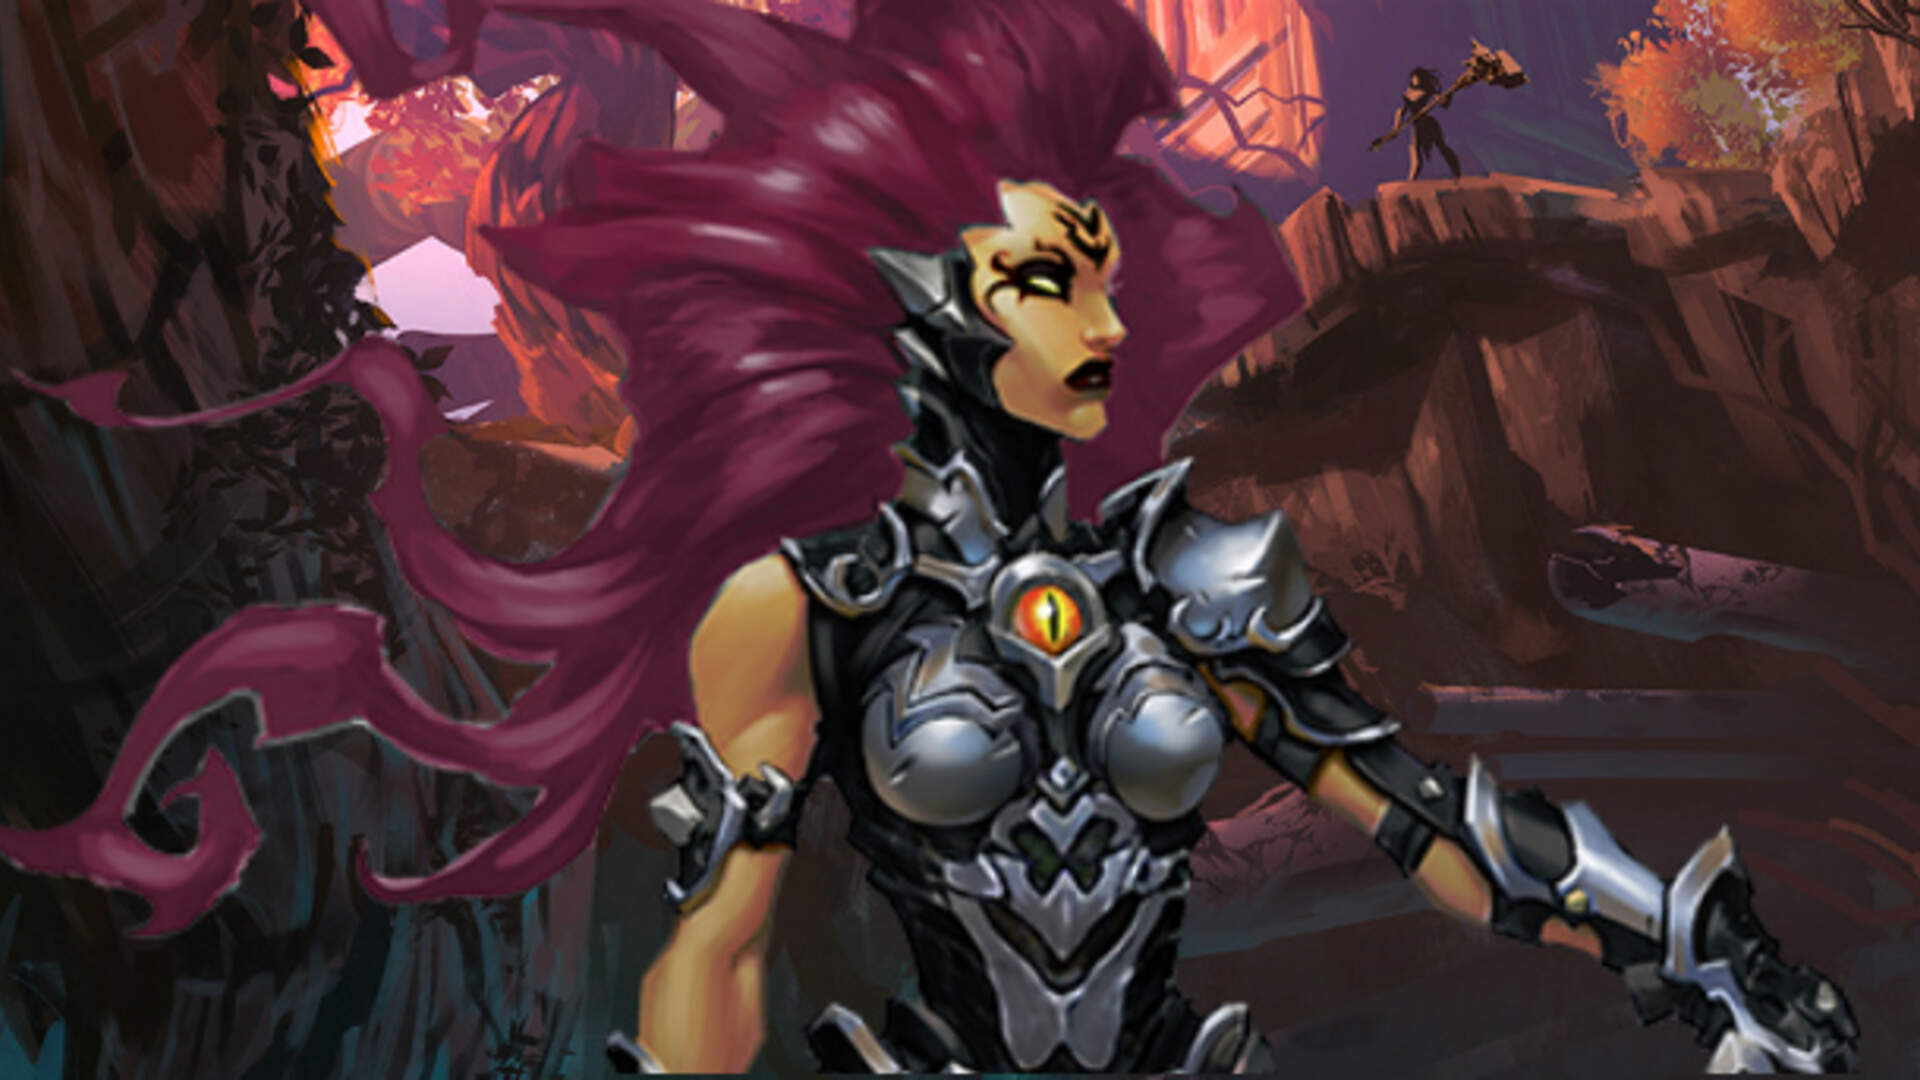 Darksiders 3 Brings The Fury This November